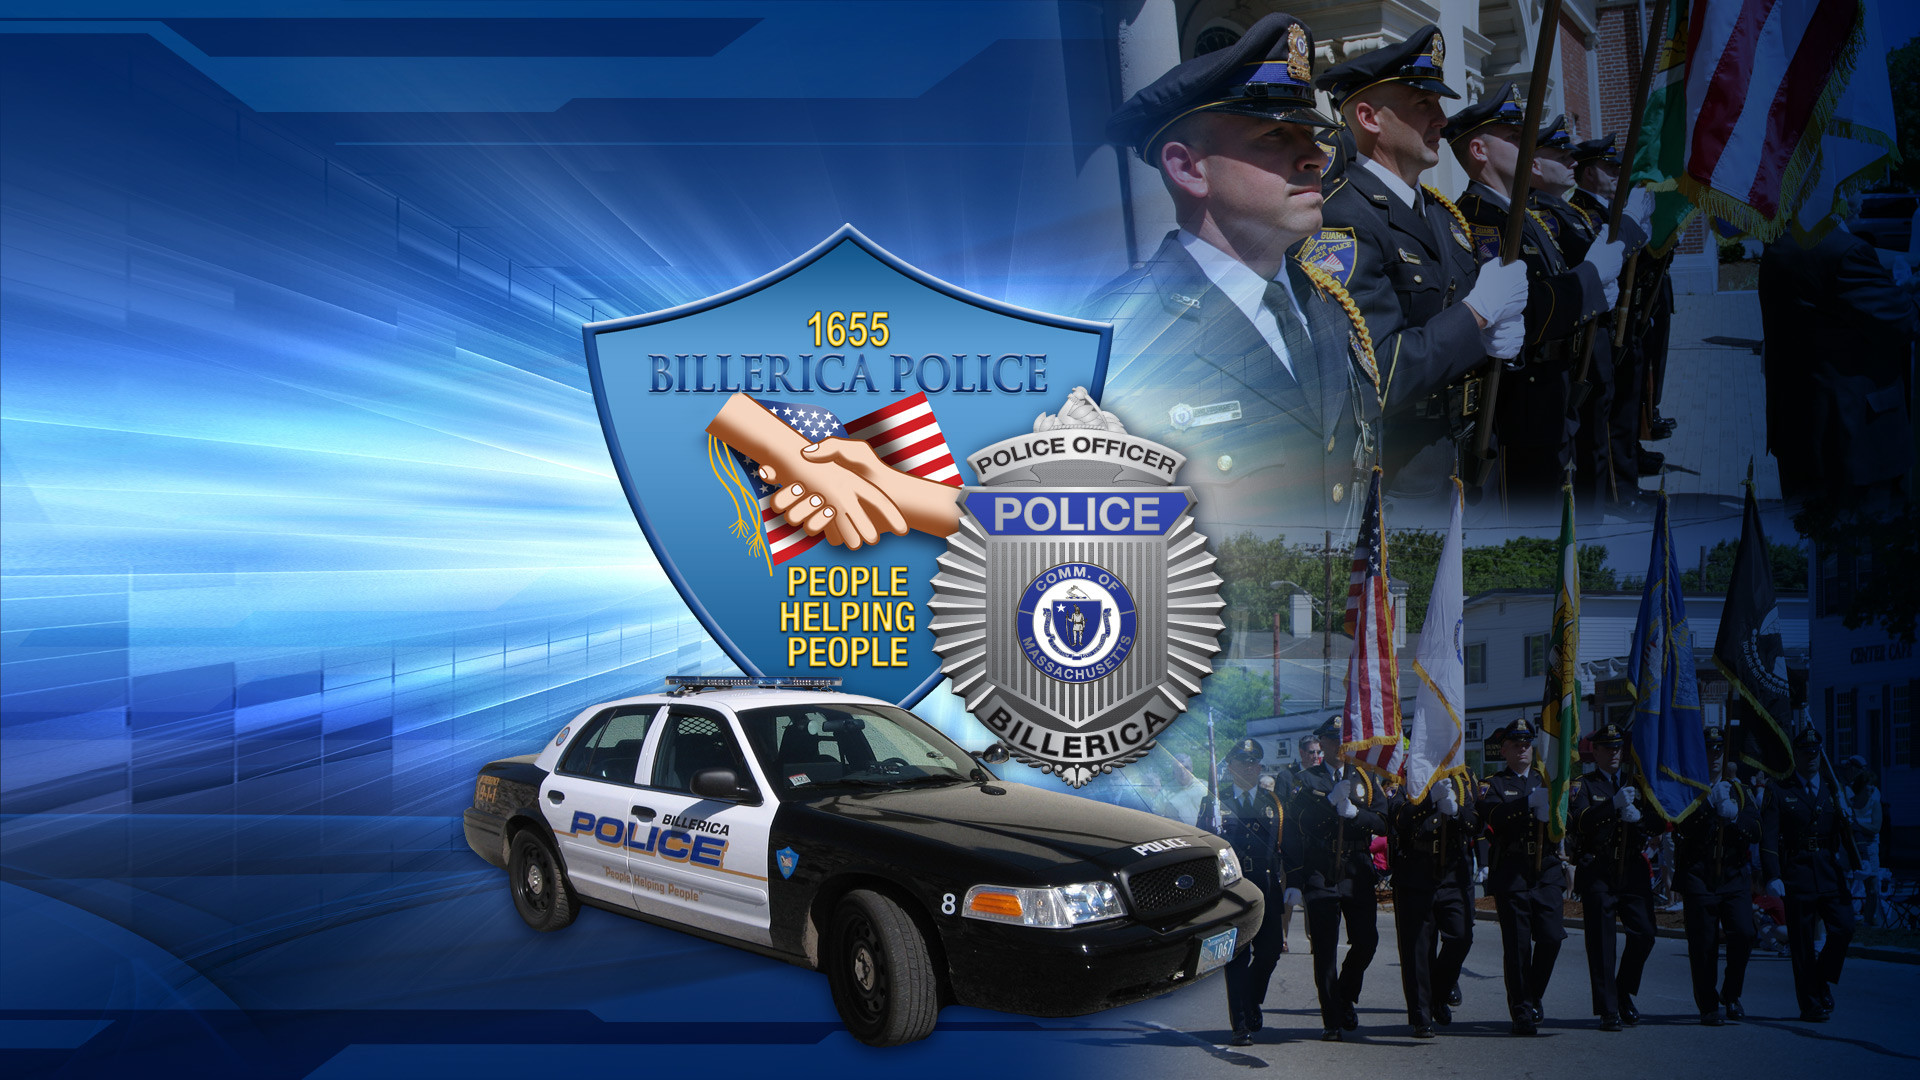 Cool Police Car Wallpapers Police Theme Wallpaper 65 Images